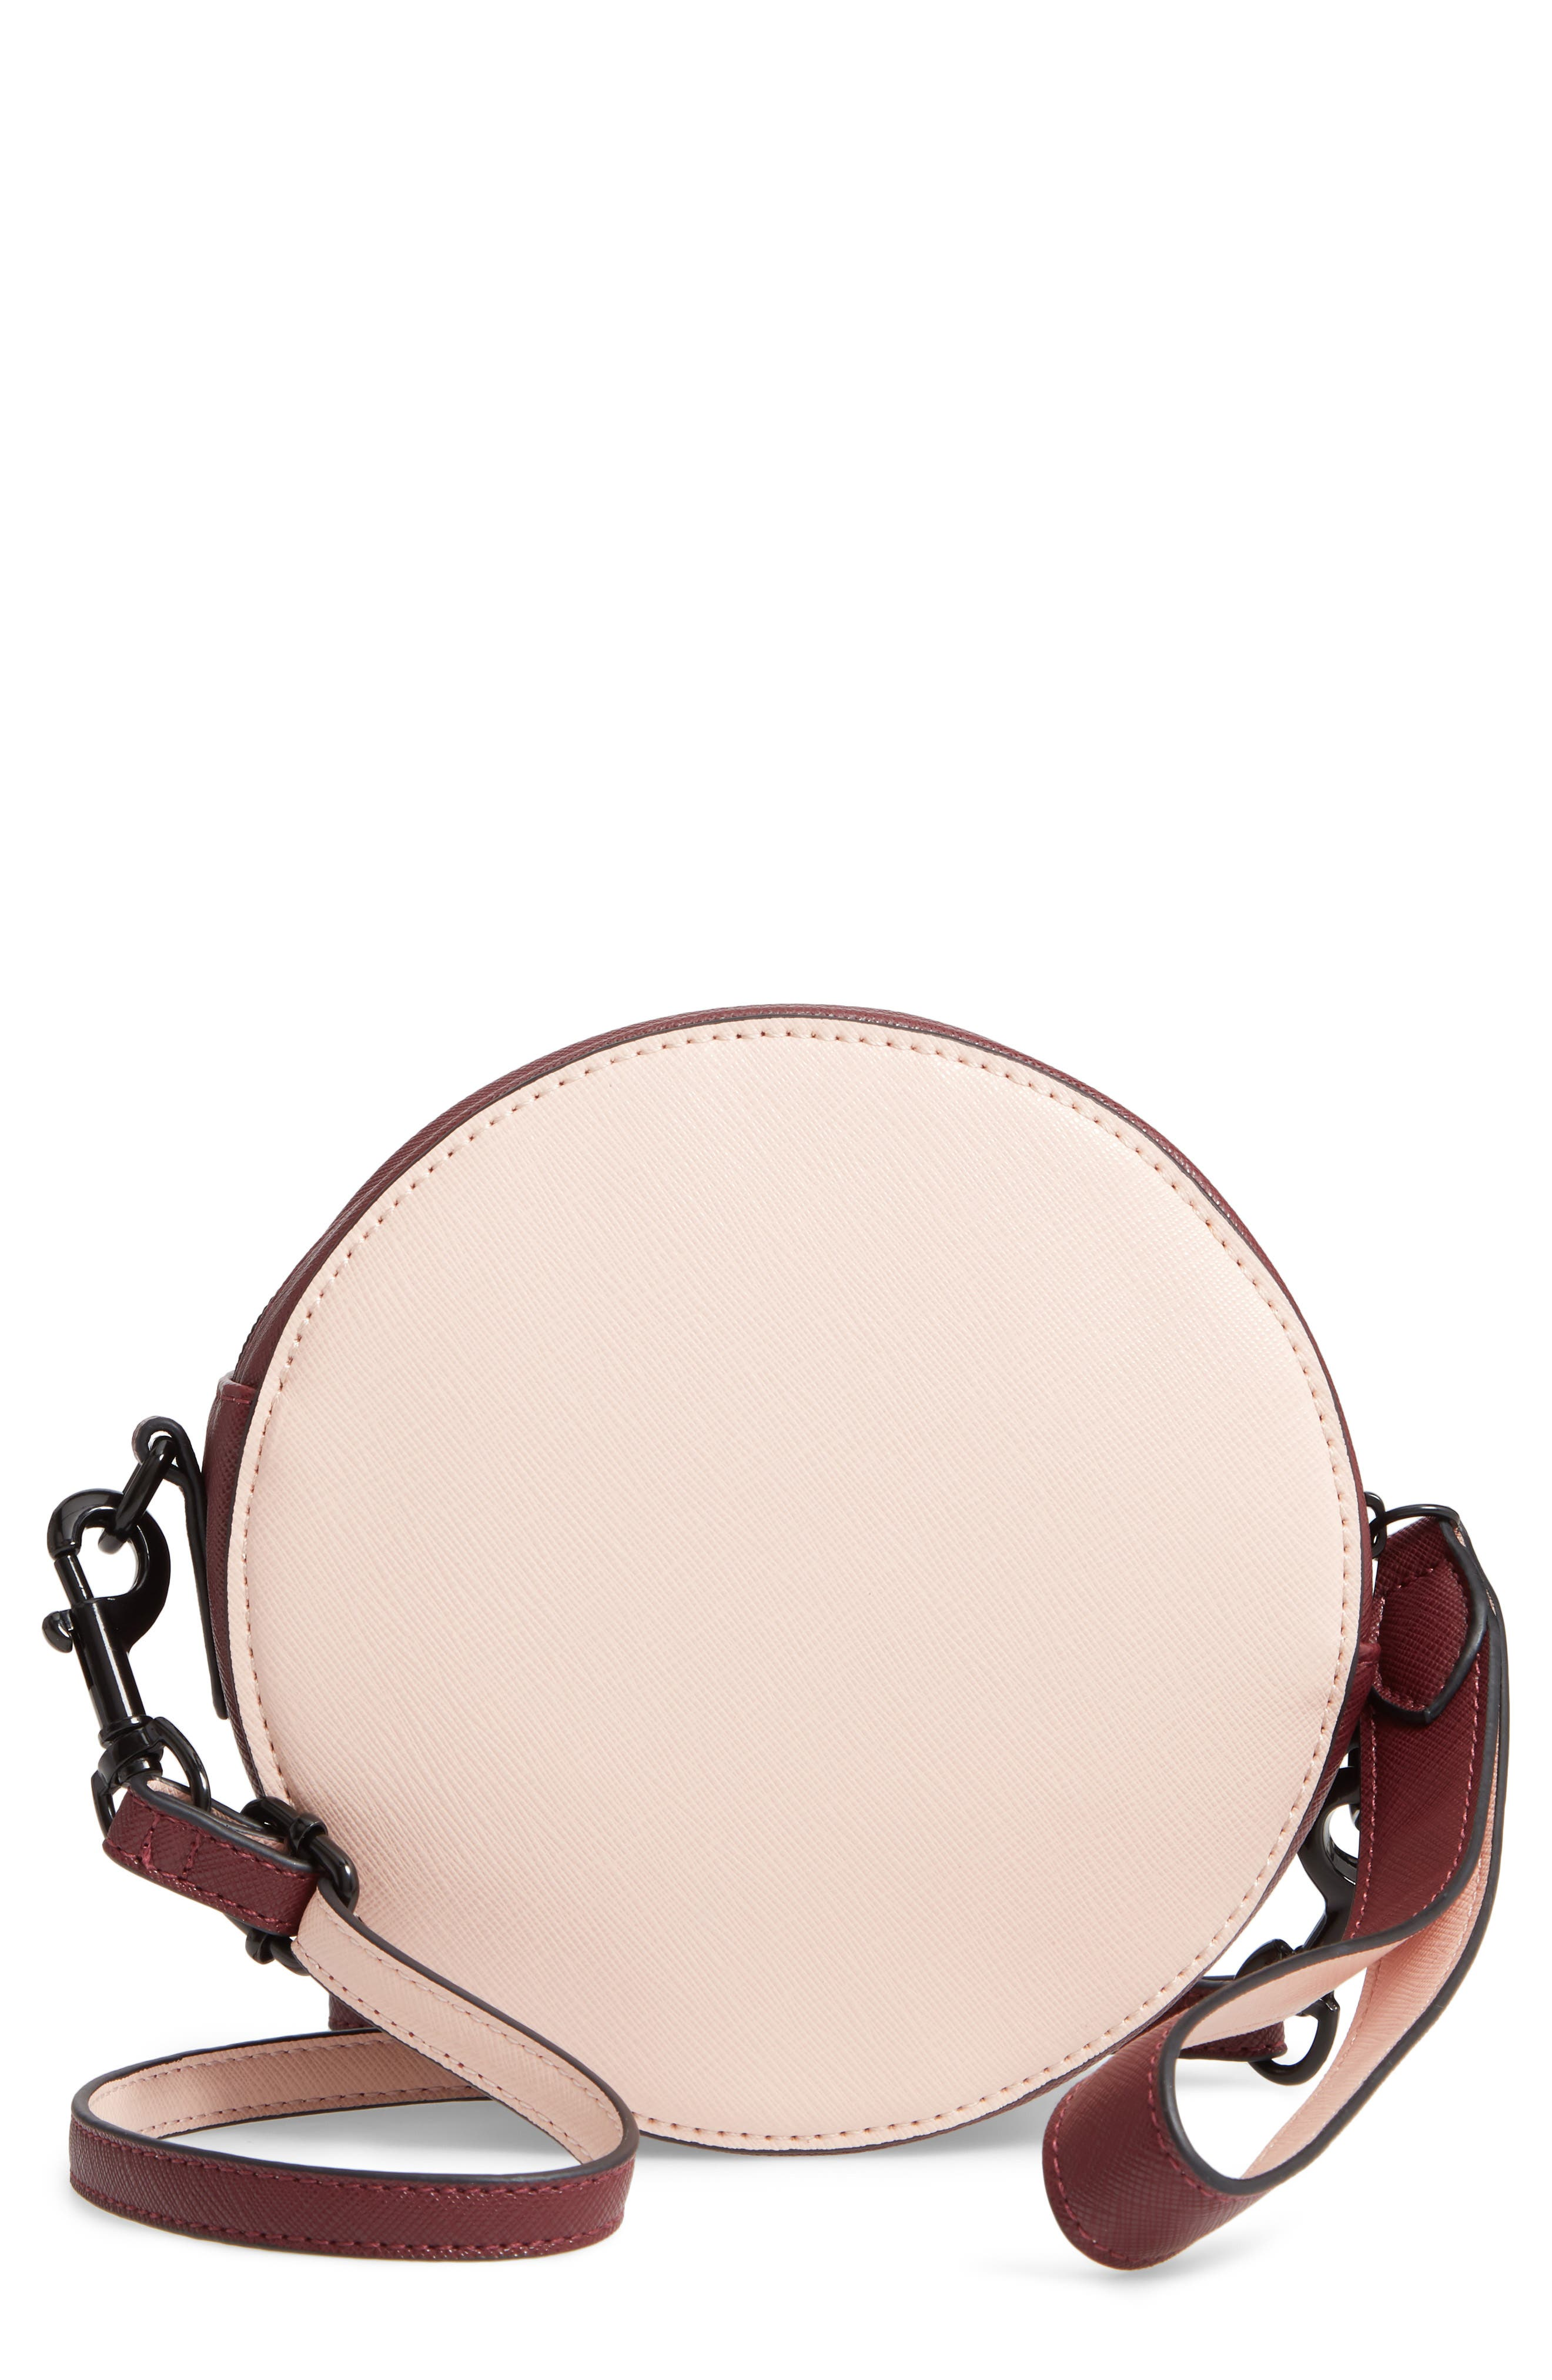 T-SHIRT & JEANS Faux Leather Colorblock Canteen Crossbody Bag, Main, color, 650